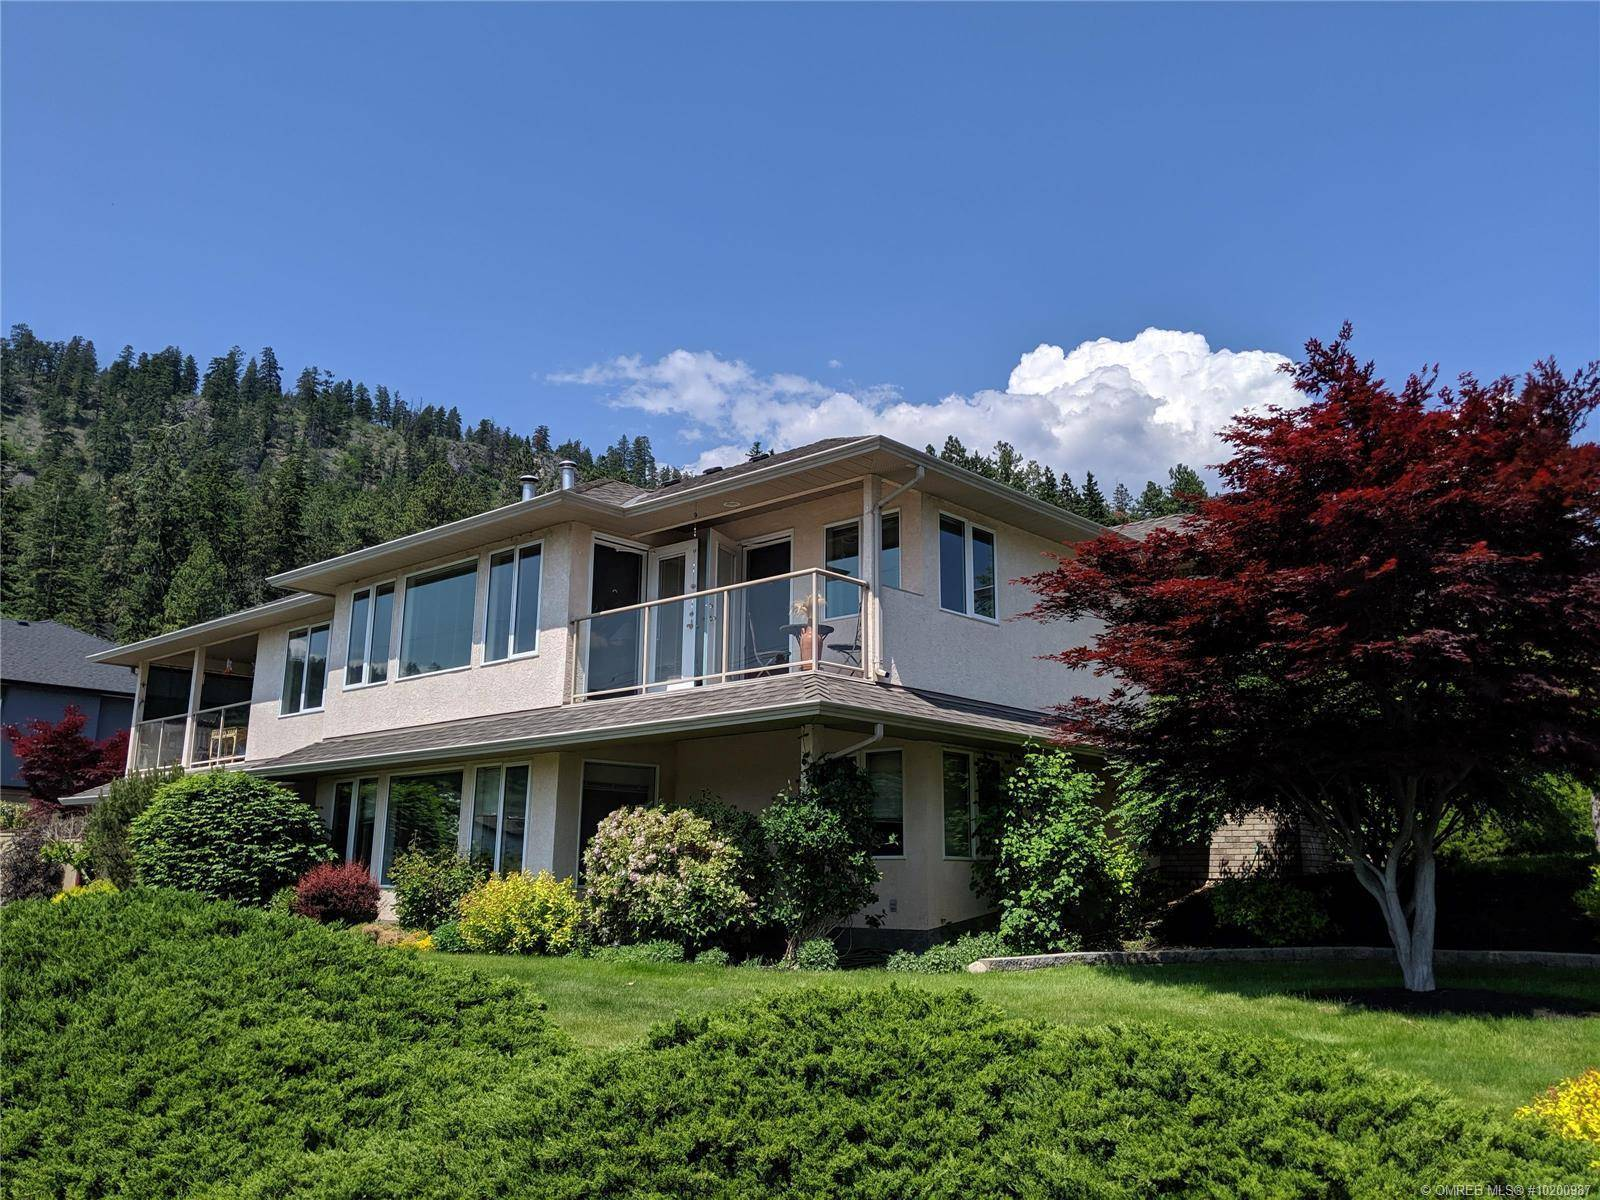 House for sale at 5990 Victoria St Peachland British Columbia - MLS: 10200987